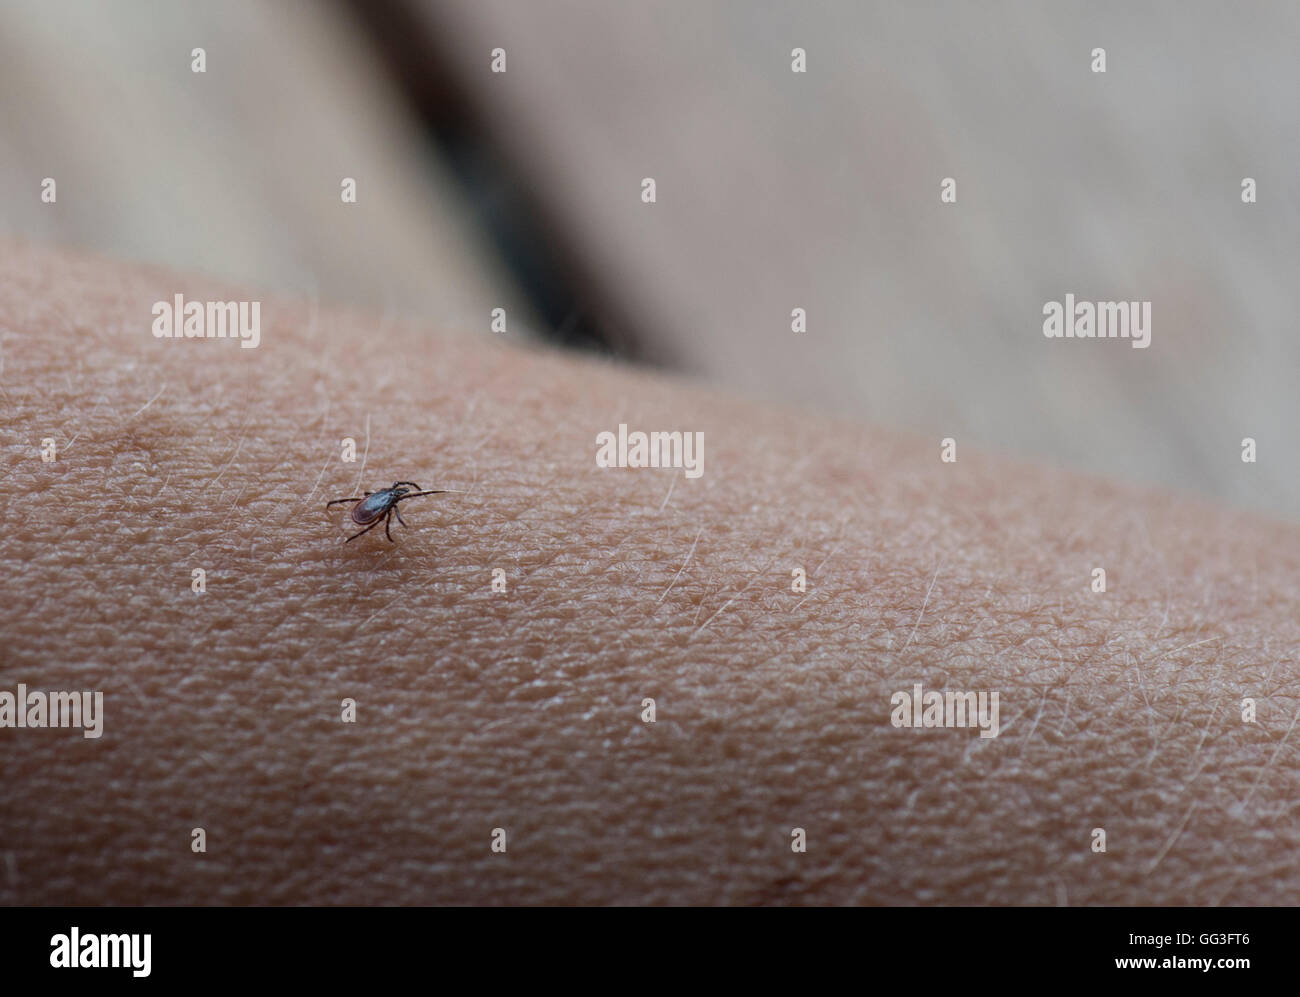 Tick on human arm searching for a place to pierce - Stock Image